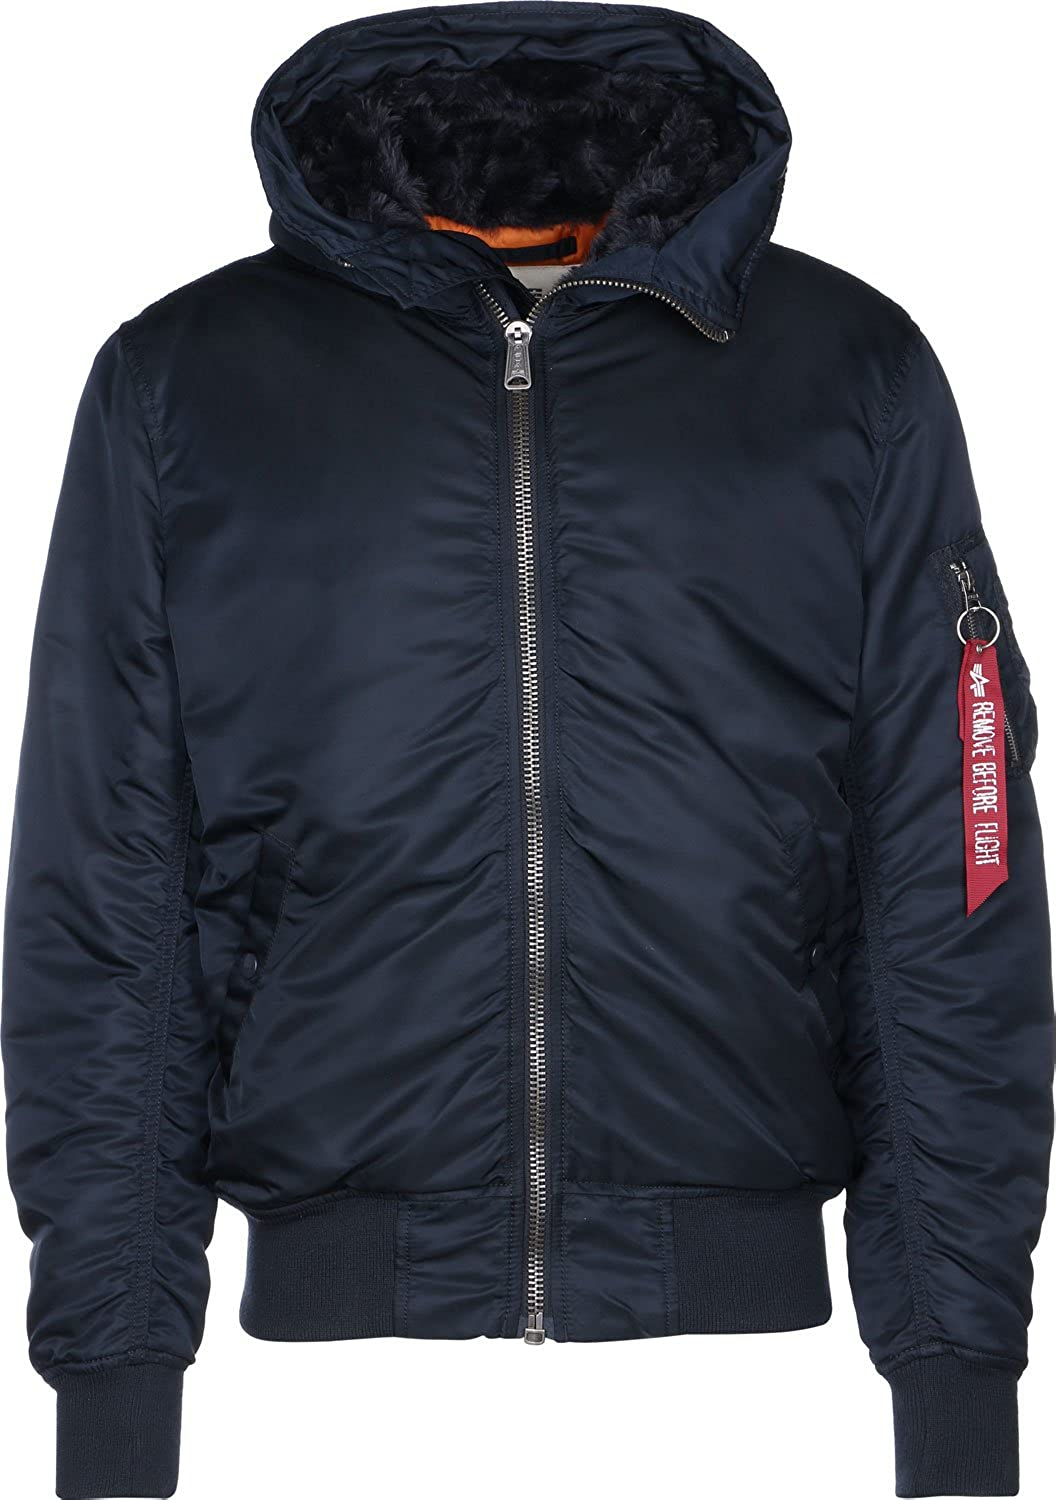 TALLA 3XL. Alpha Industries Jacket MA-1 Hooded w.o. fur